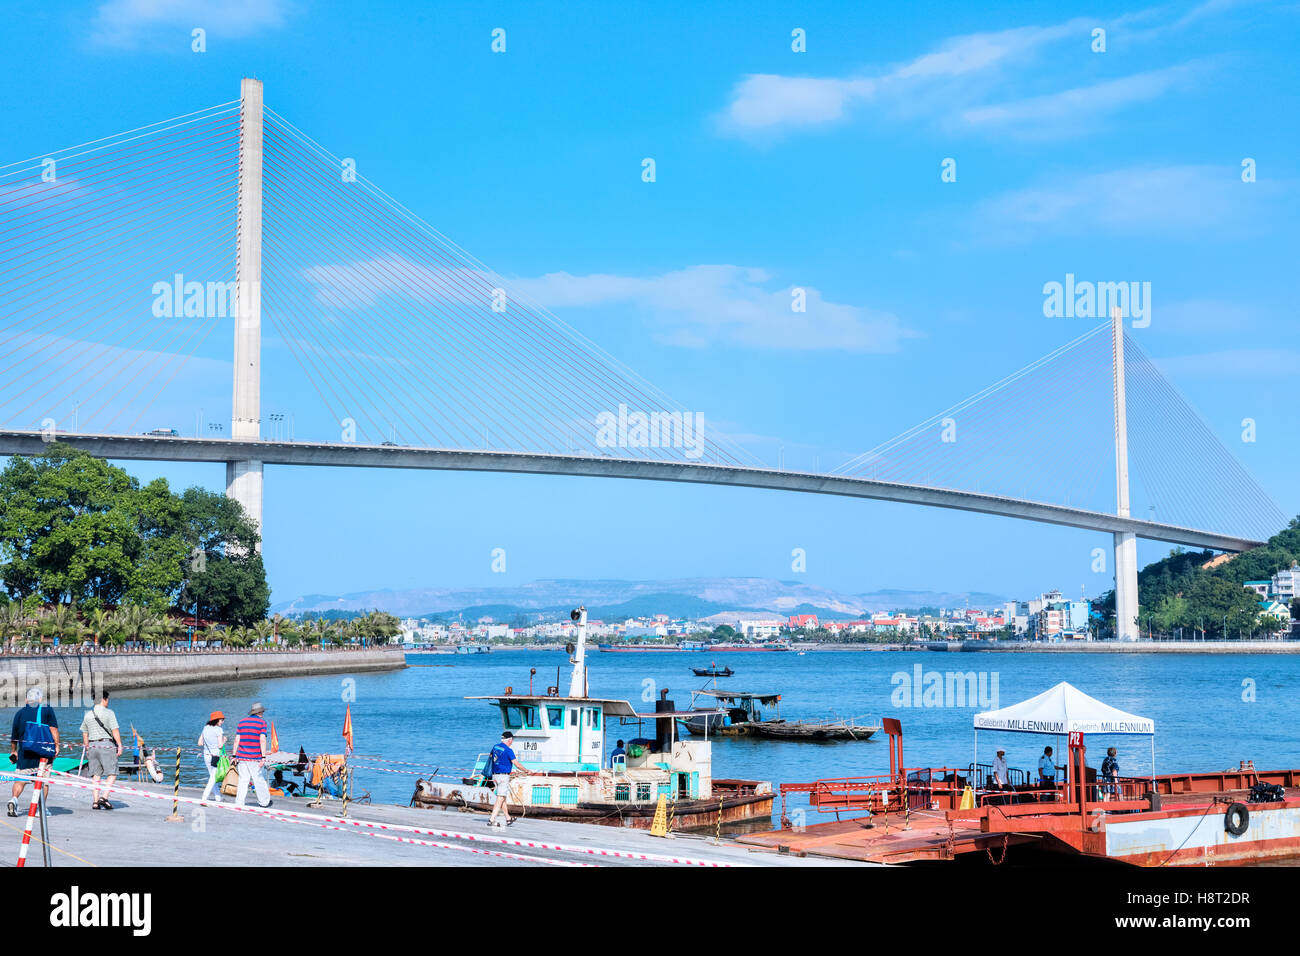 Bai Chay Bridge Three Gorge, Halong Bay, Vietnam, Indochina, Asia - Stock Image